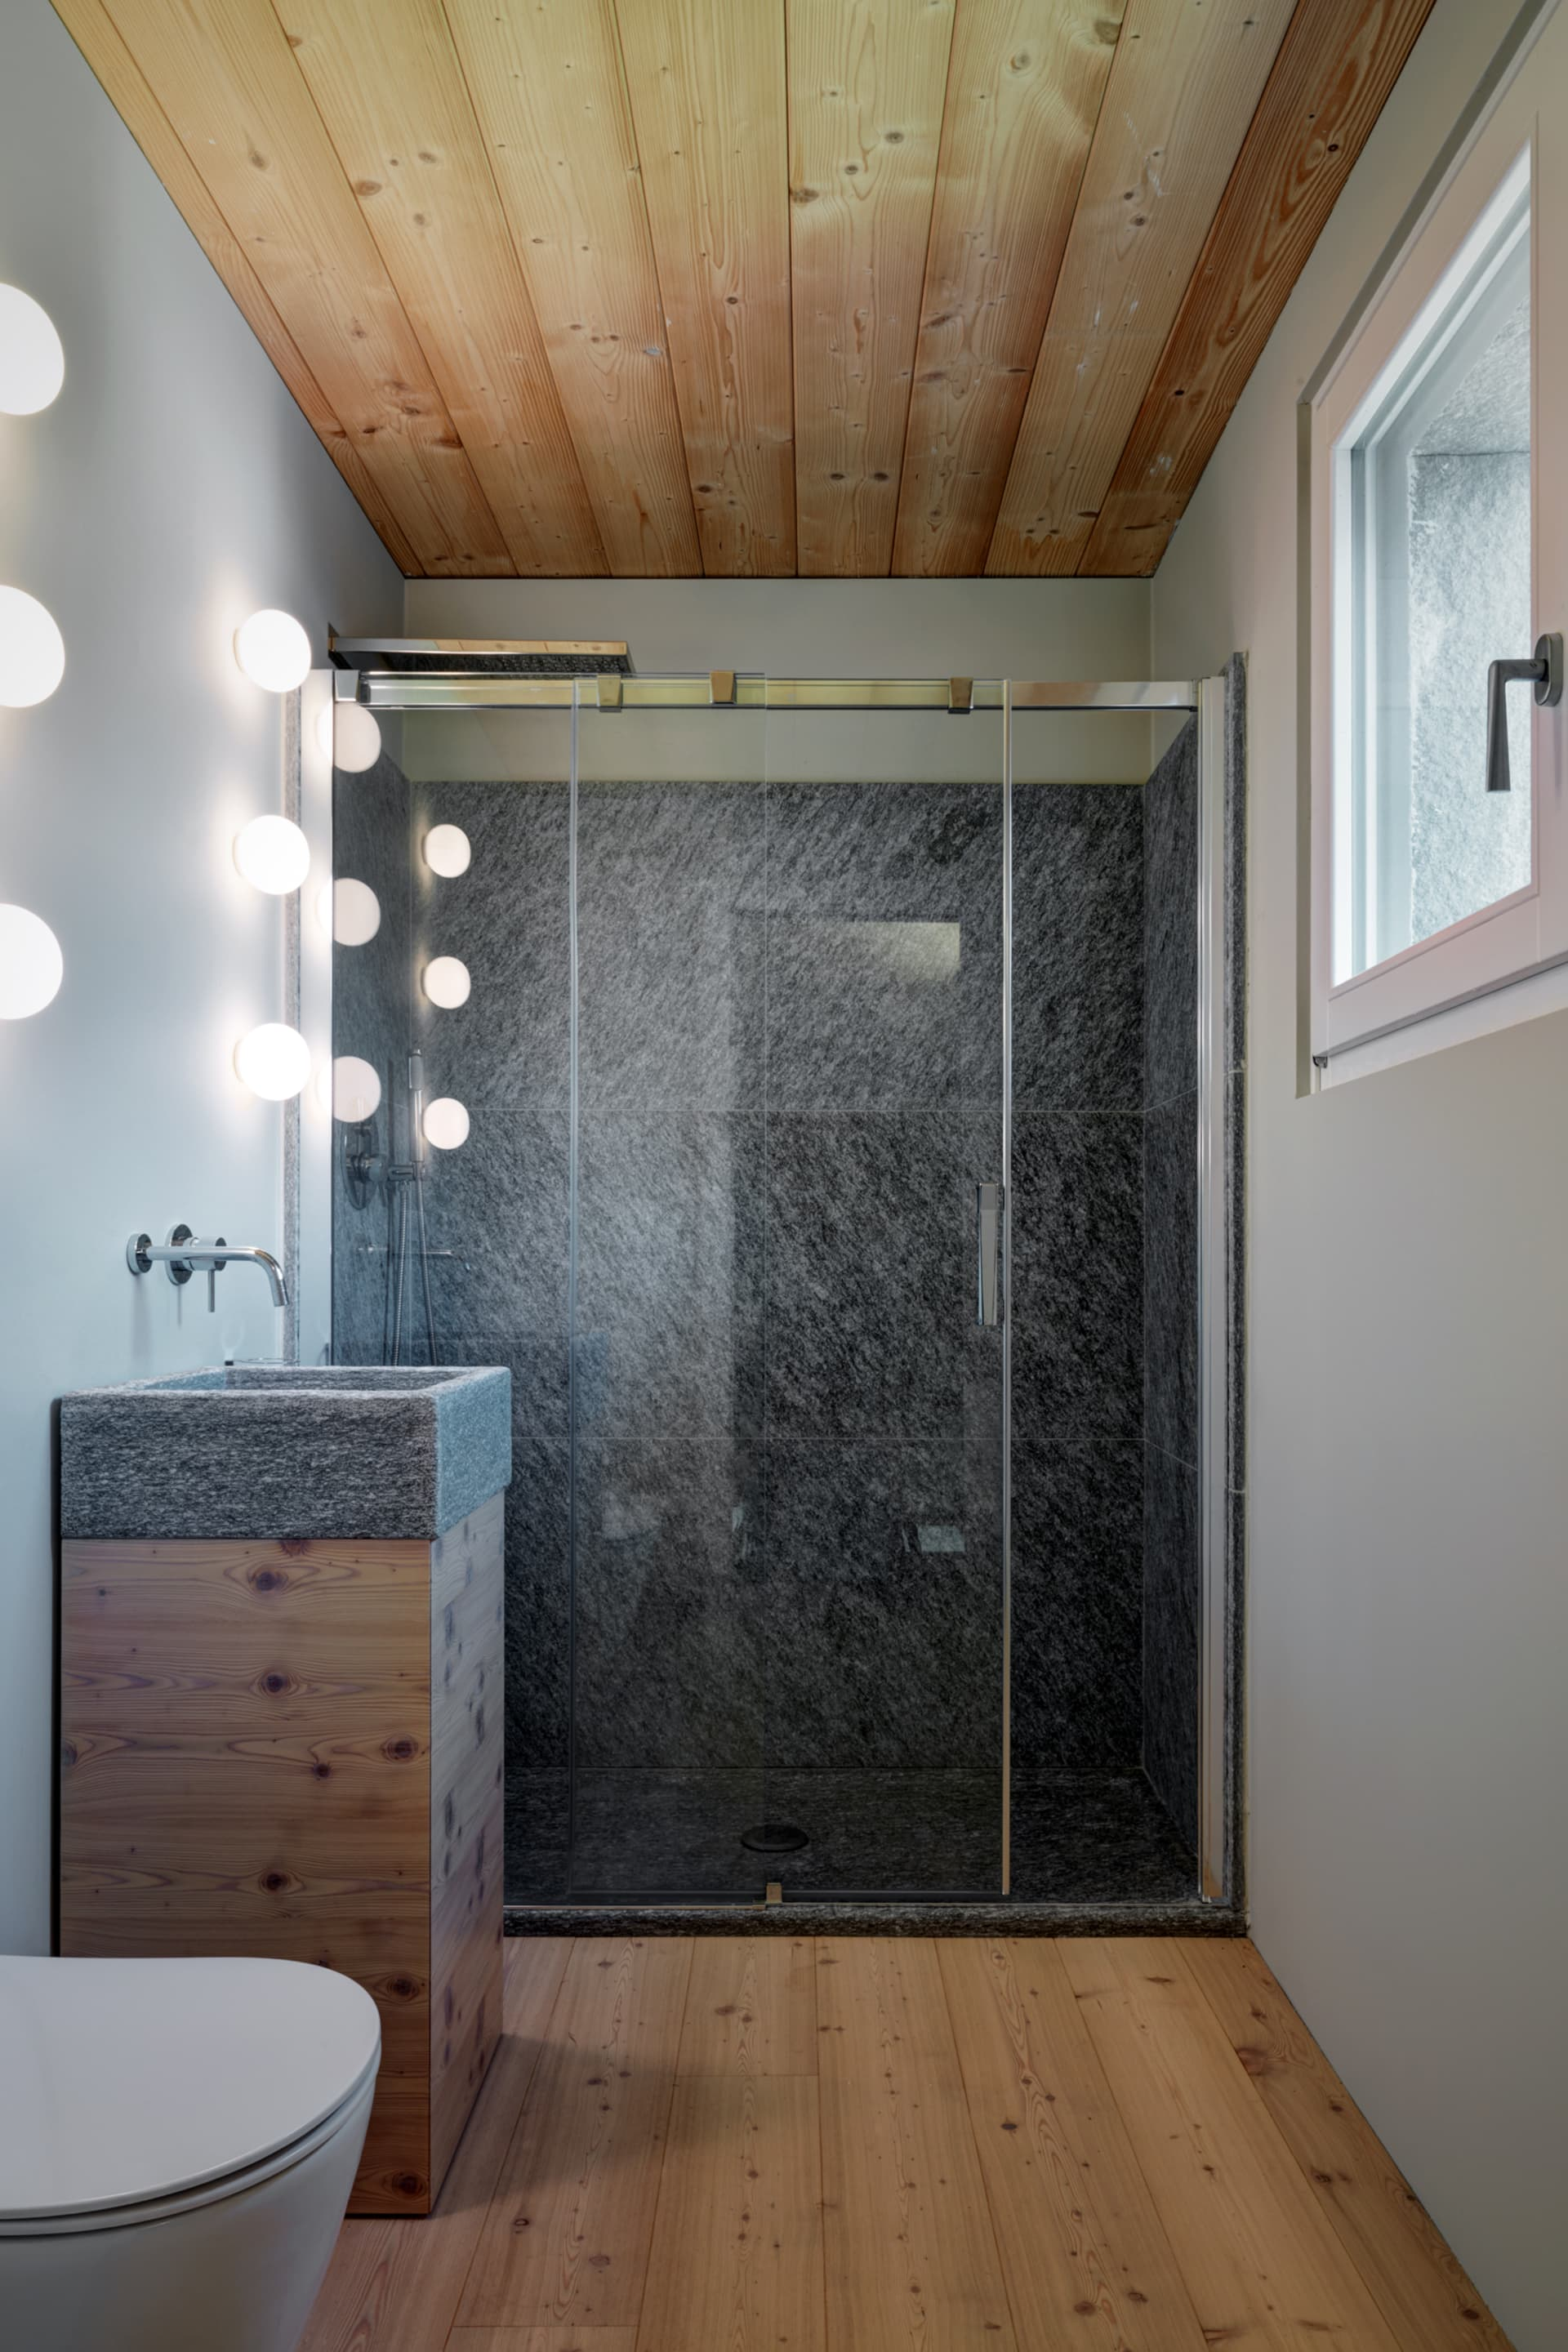 How to make the most out of a tiny room: the bathroom has it all. Look at the stone sink especially designed for the space.